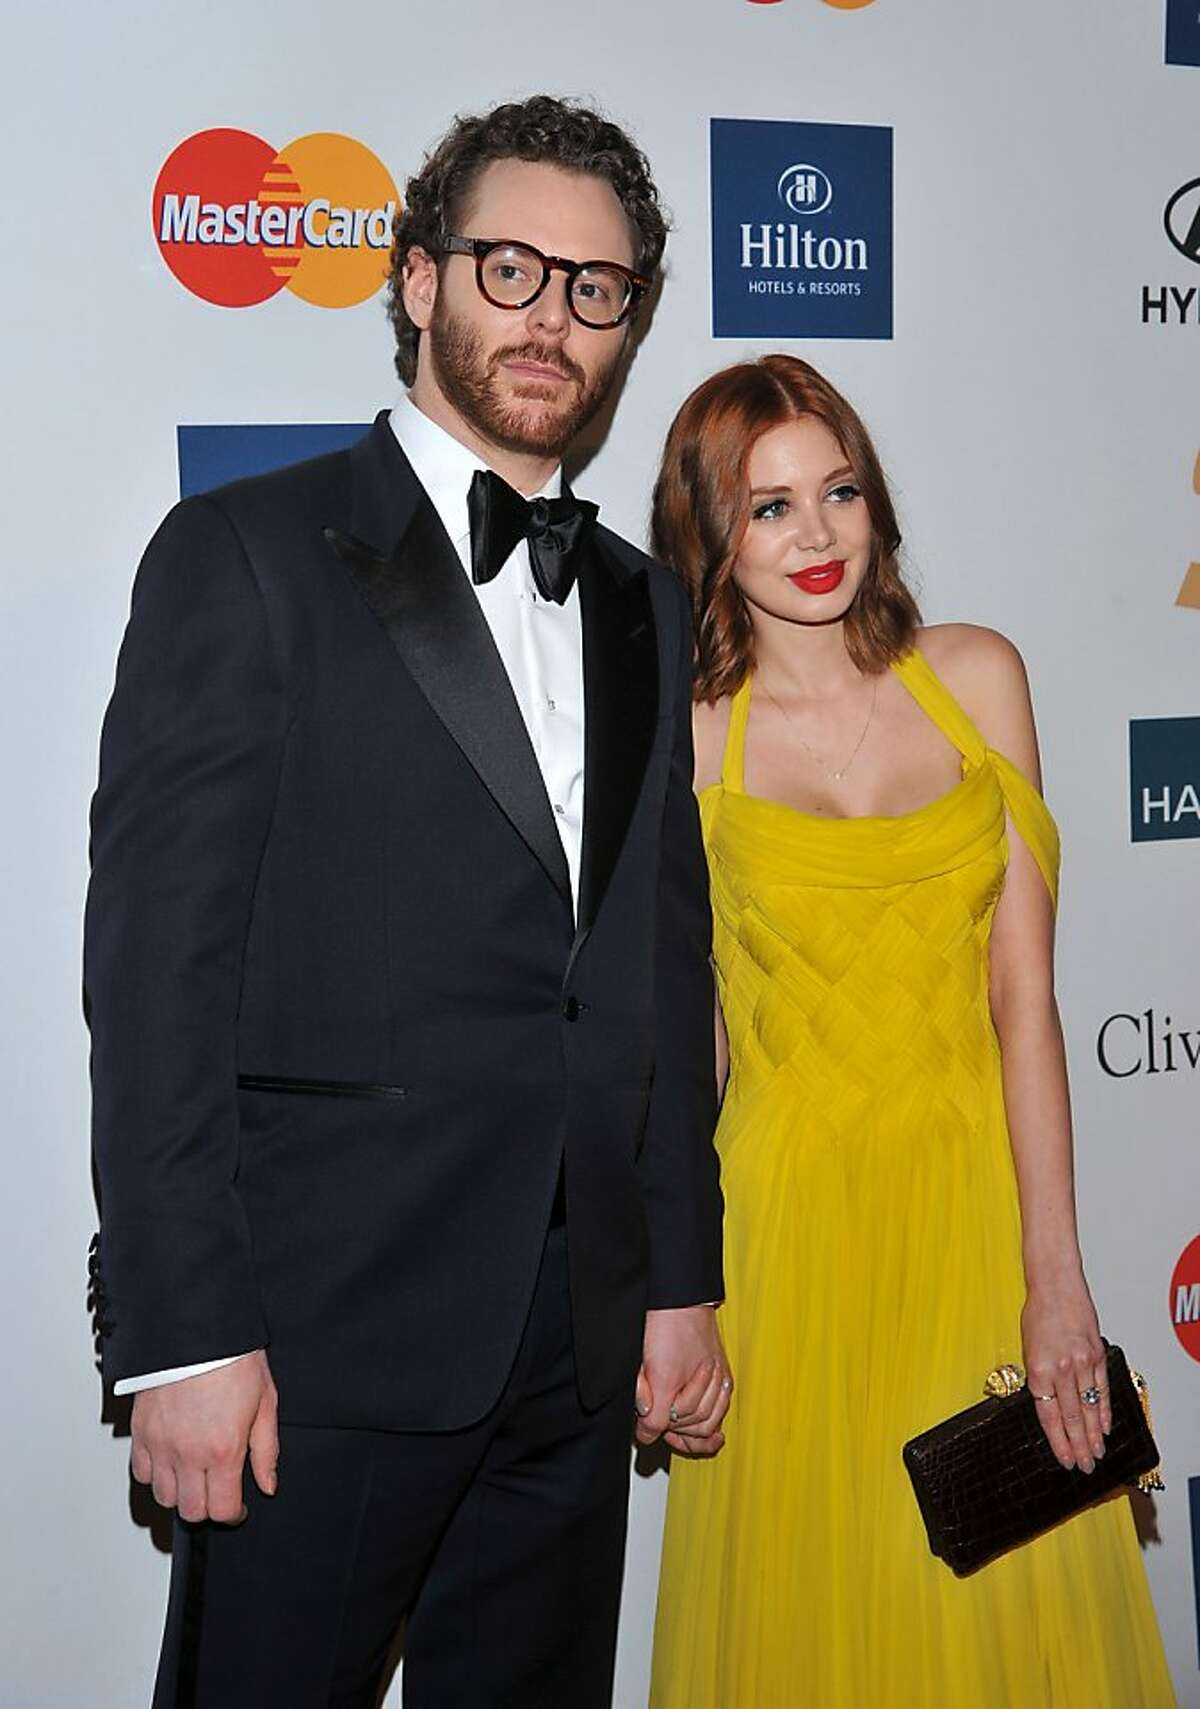 In this Feb. 11, 2012 file photo, Sean Parker, left, and Alexandra Lenas arrive at the Pre-GRAMMY Gala & Salute to Industry Icons with Clive Davis honoring Richard Branson in Beverly Hills, Calif. Facebook billionaire Sean Parker's lavish, $10-million Big Sur wedding just got even more expensive. The California Coastal Commission and Parker on Monday said they reached a $2.5 million settlement to pay for coastal conservation programs after the Napster co-founder built a large movie-set like wedding in an ecologically sensitive area of Big Sur without proper permits. (AP Photo/Vince Bucci, file)